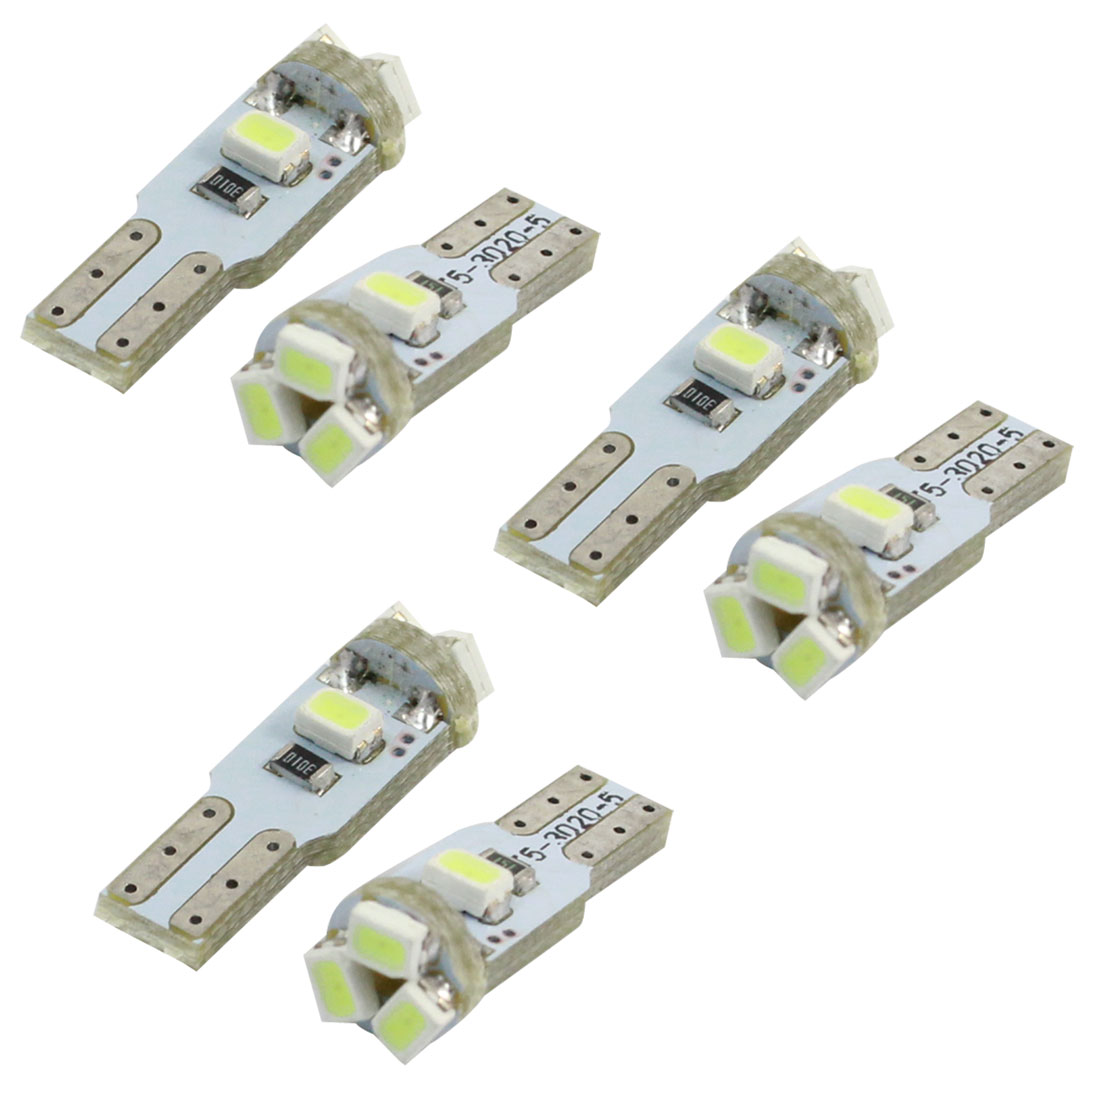 6 Pcs T5 3020 Ice Blue 5 LED Internal Dashboard Replacement Light Bulbs for Car